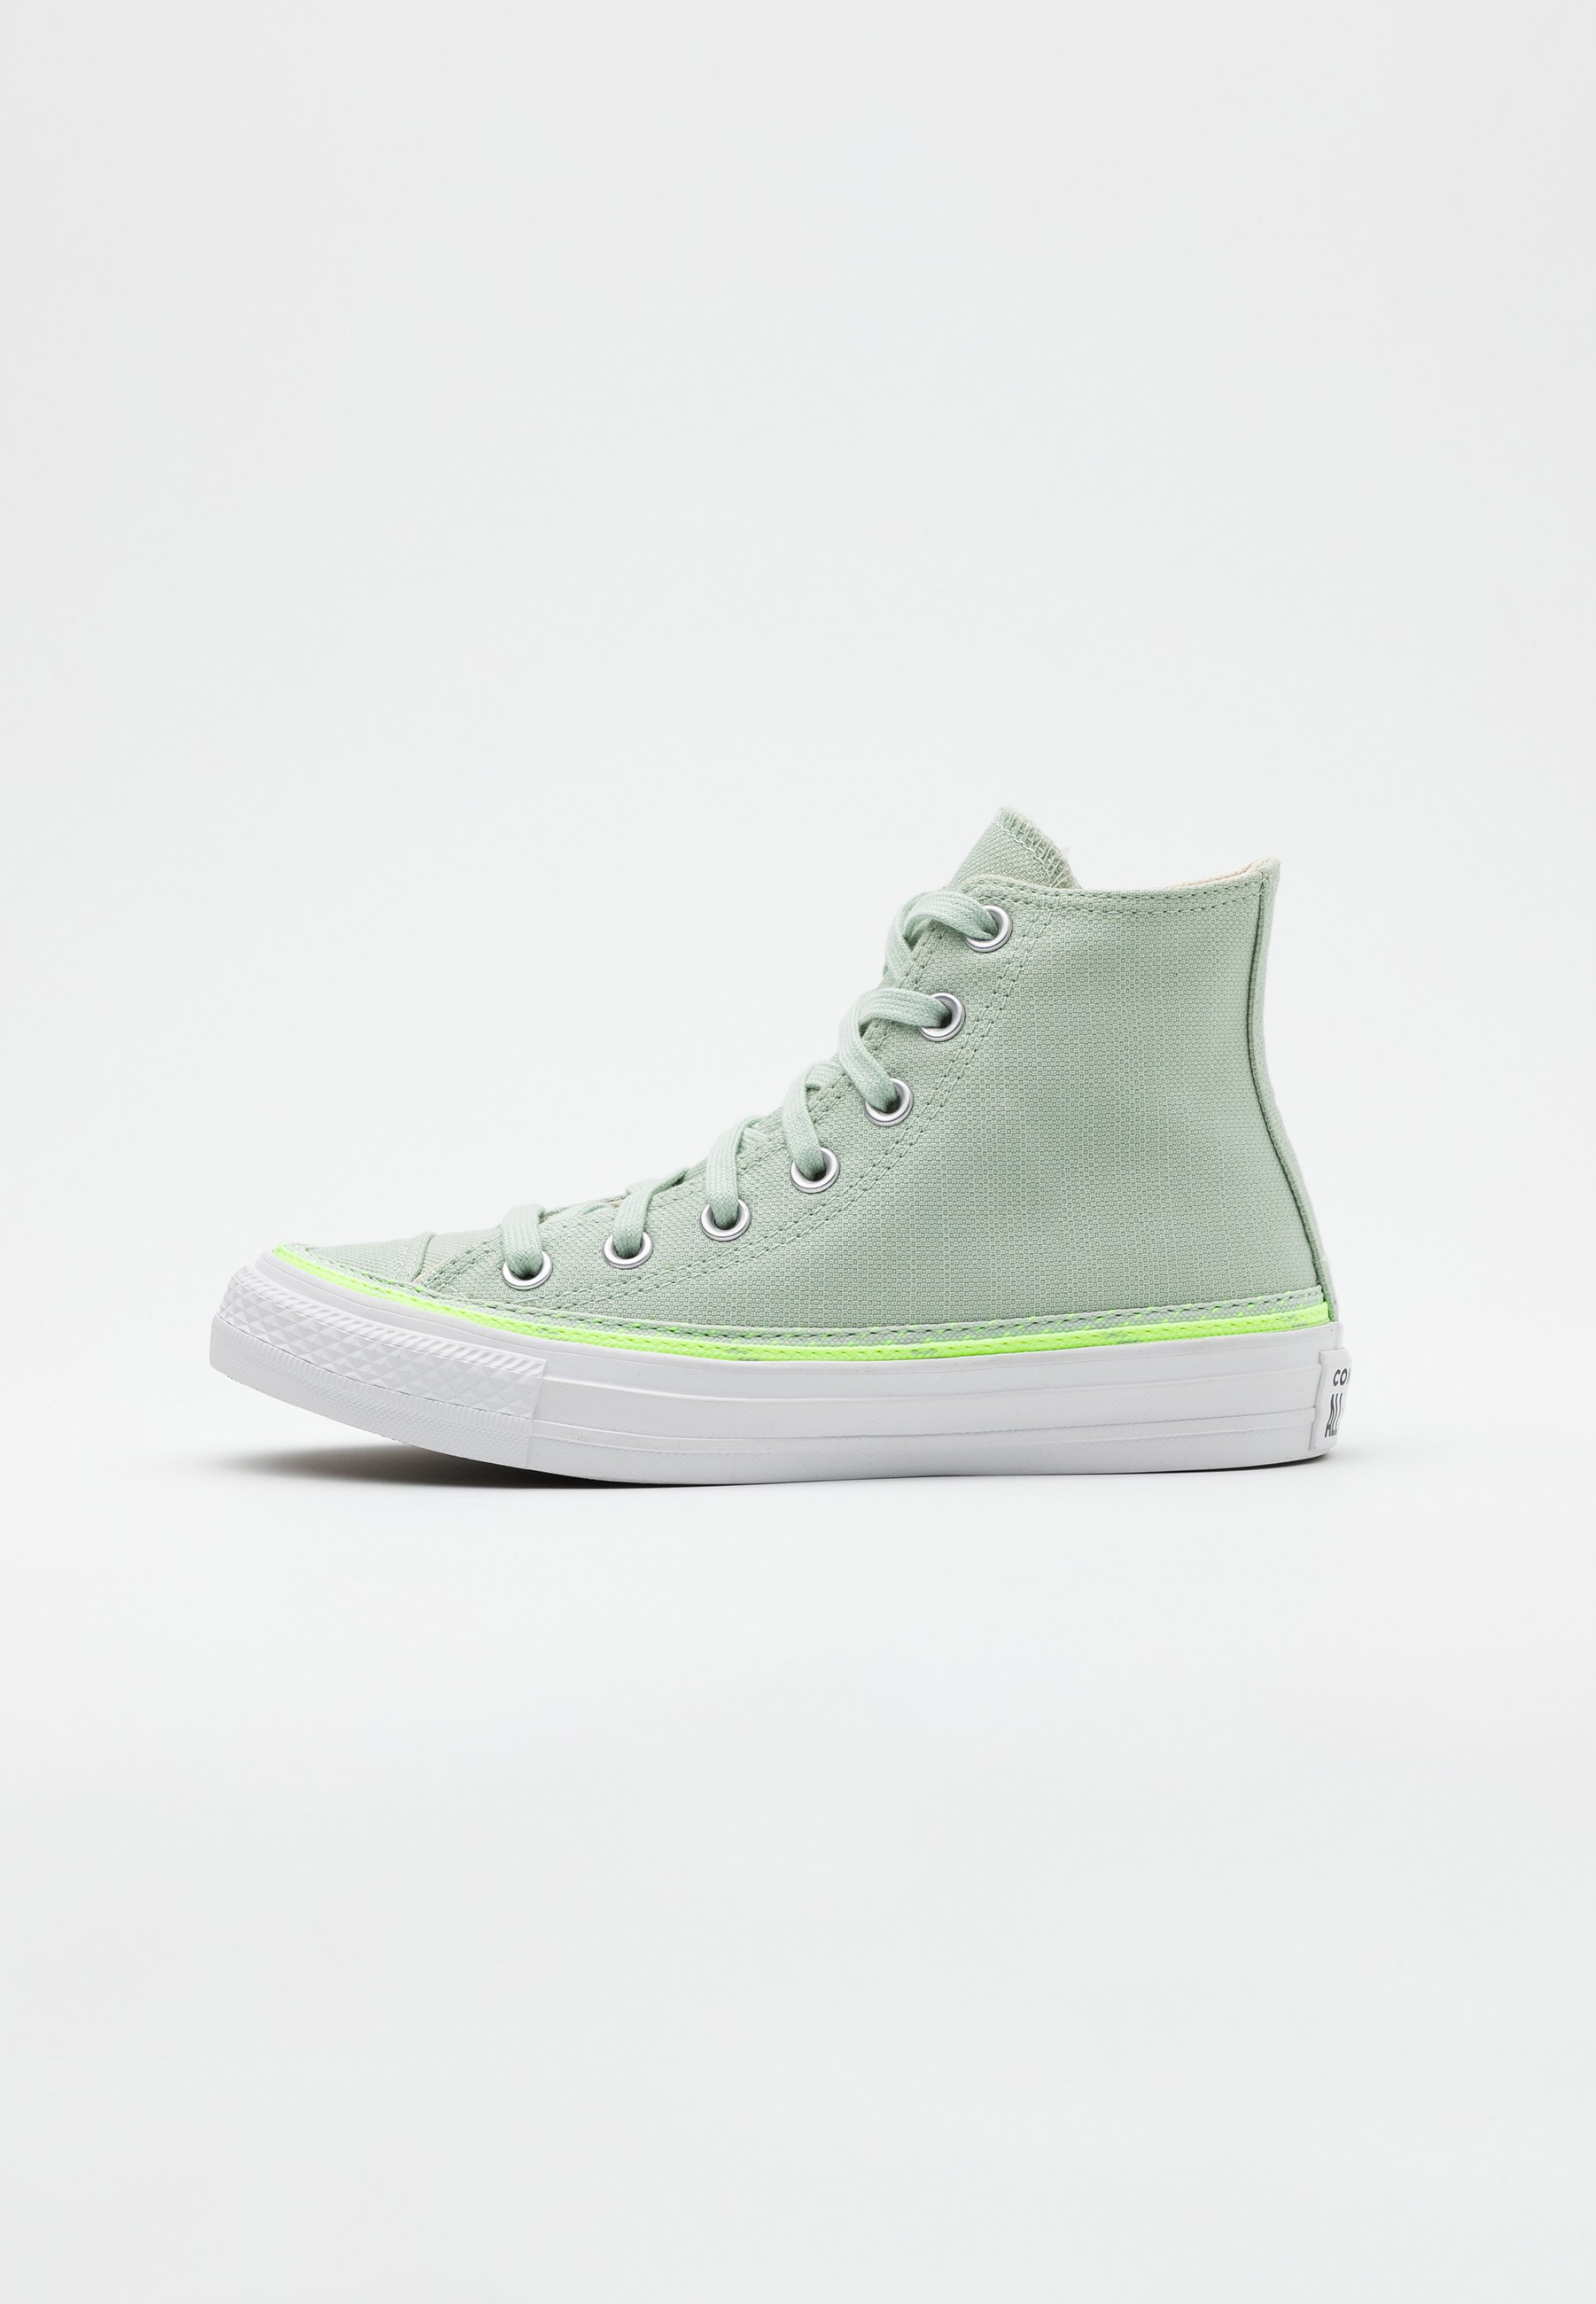 converse homme green